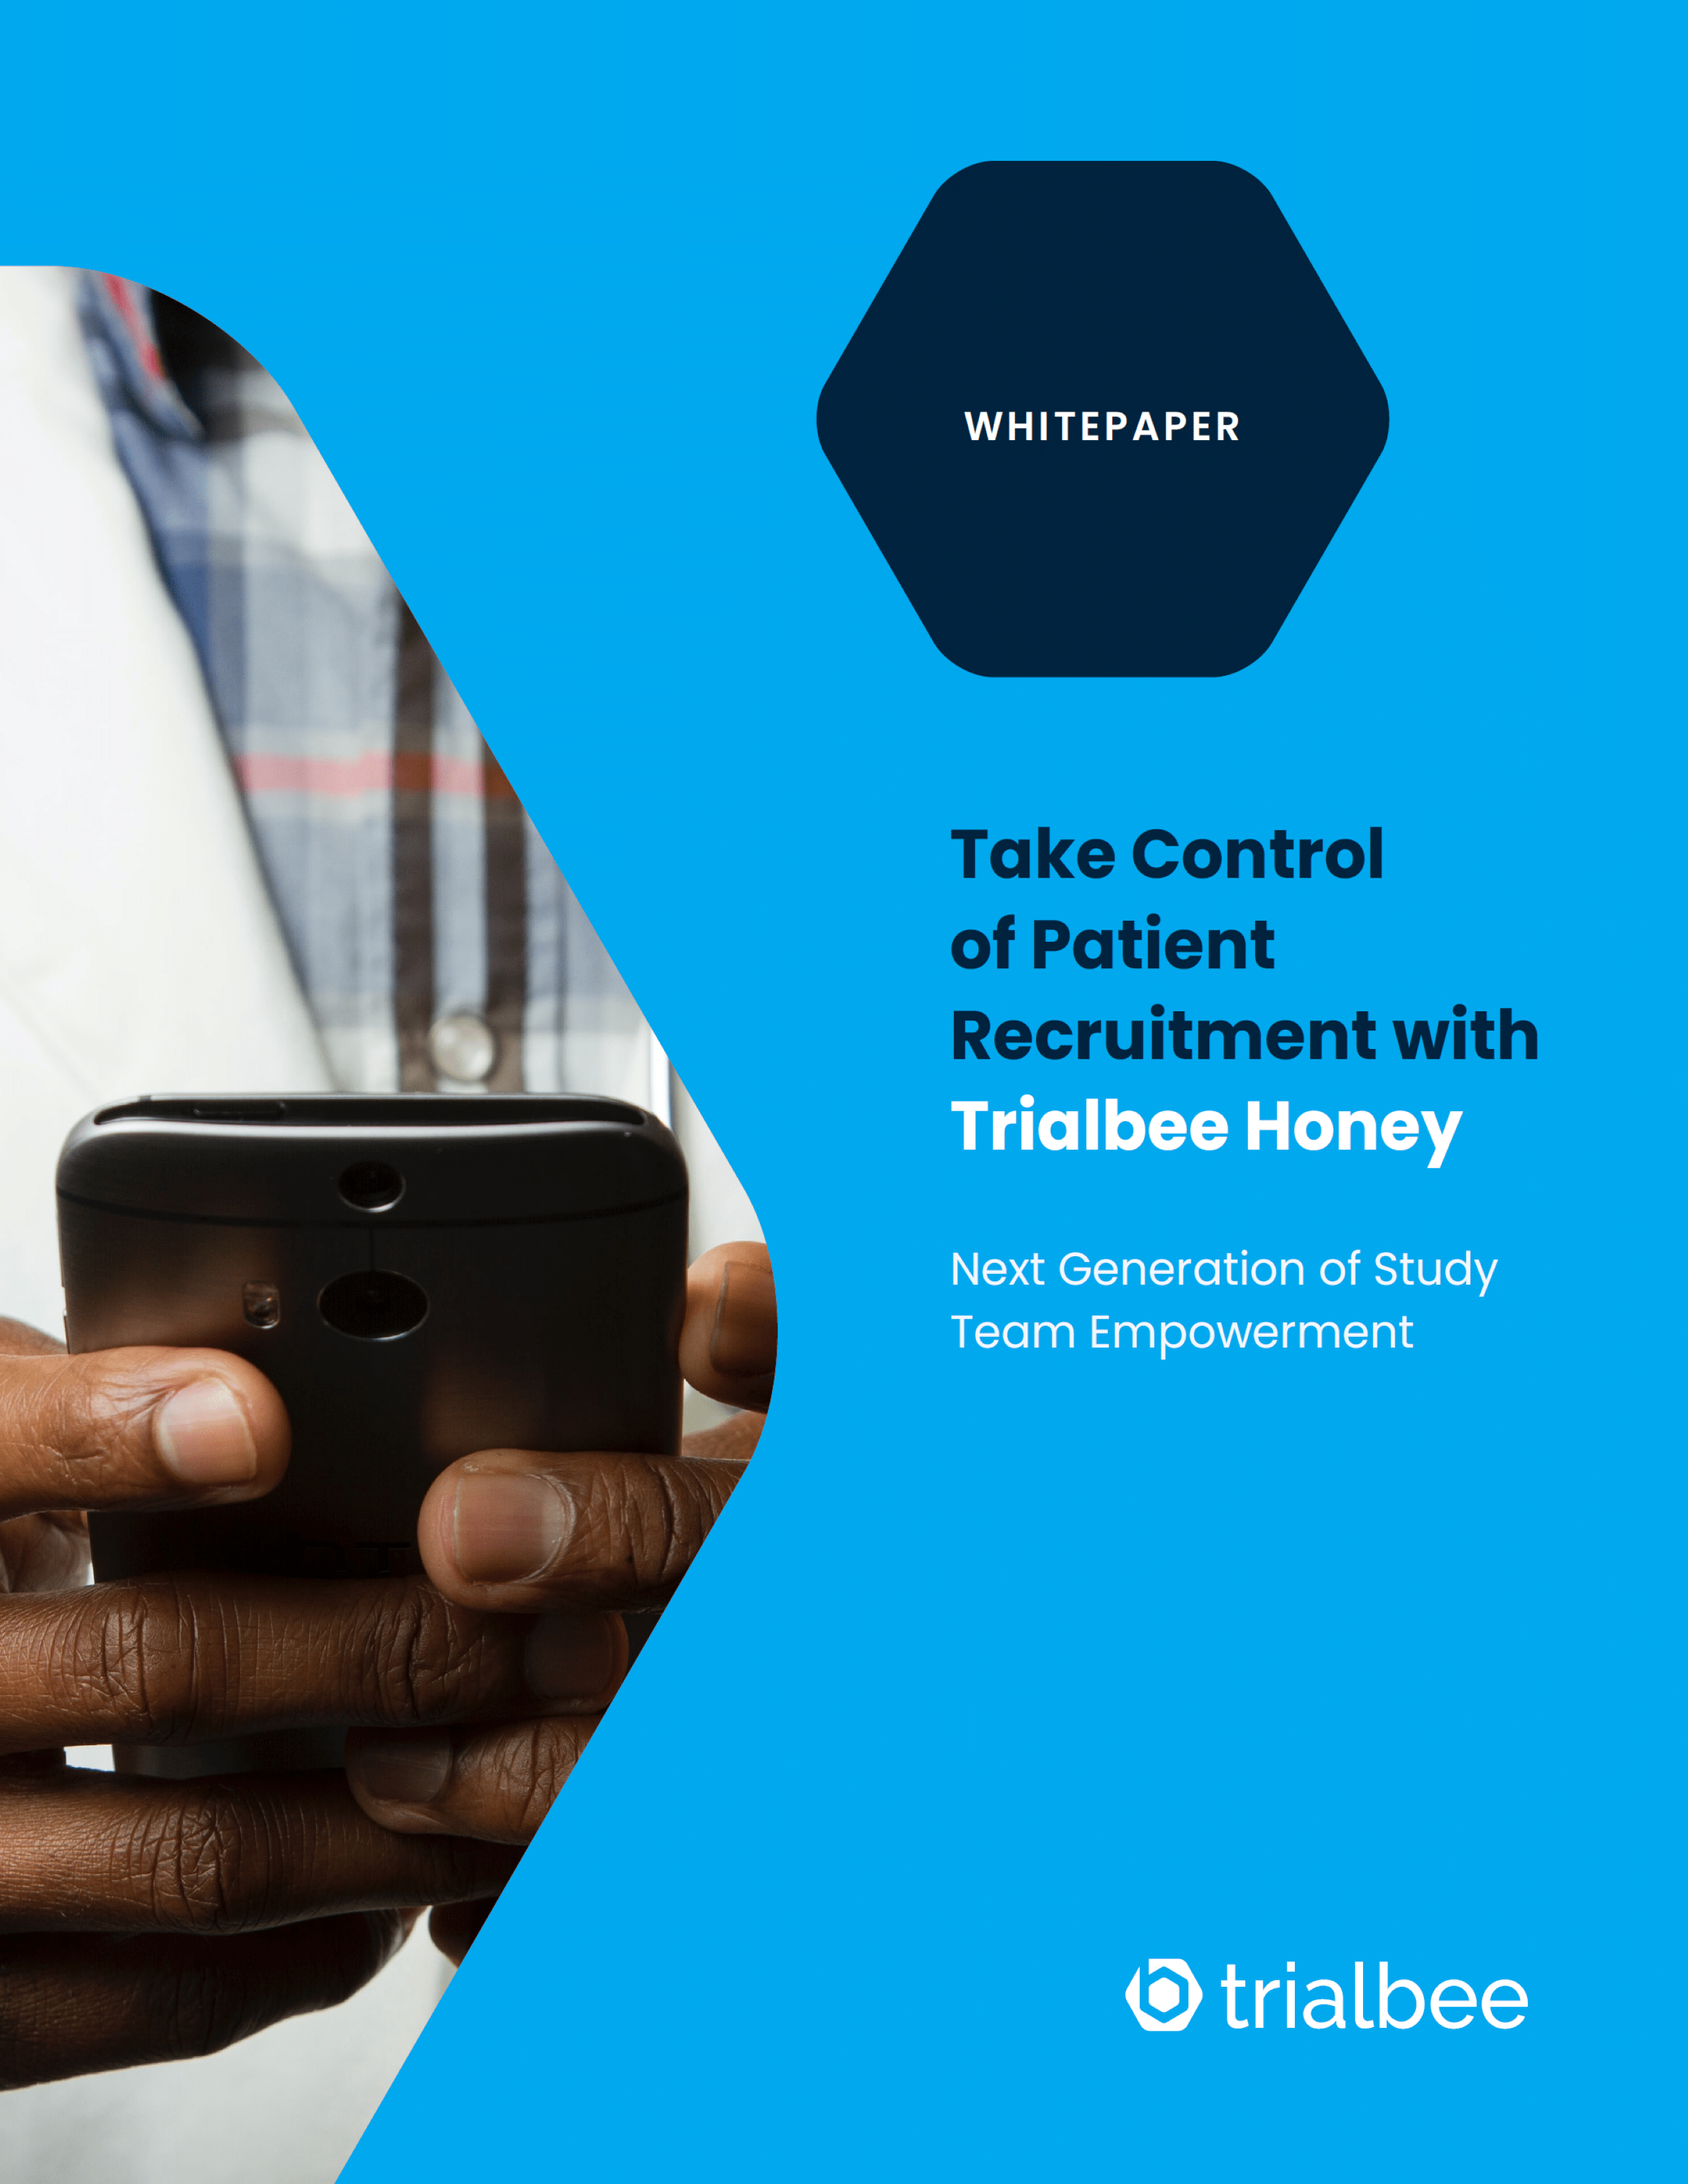 Take Control of Patient Recruitment with Trialbee Honey: Next Generation of Study Team Empowerment